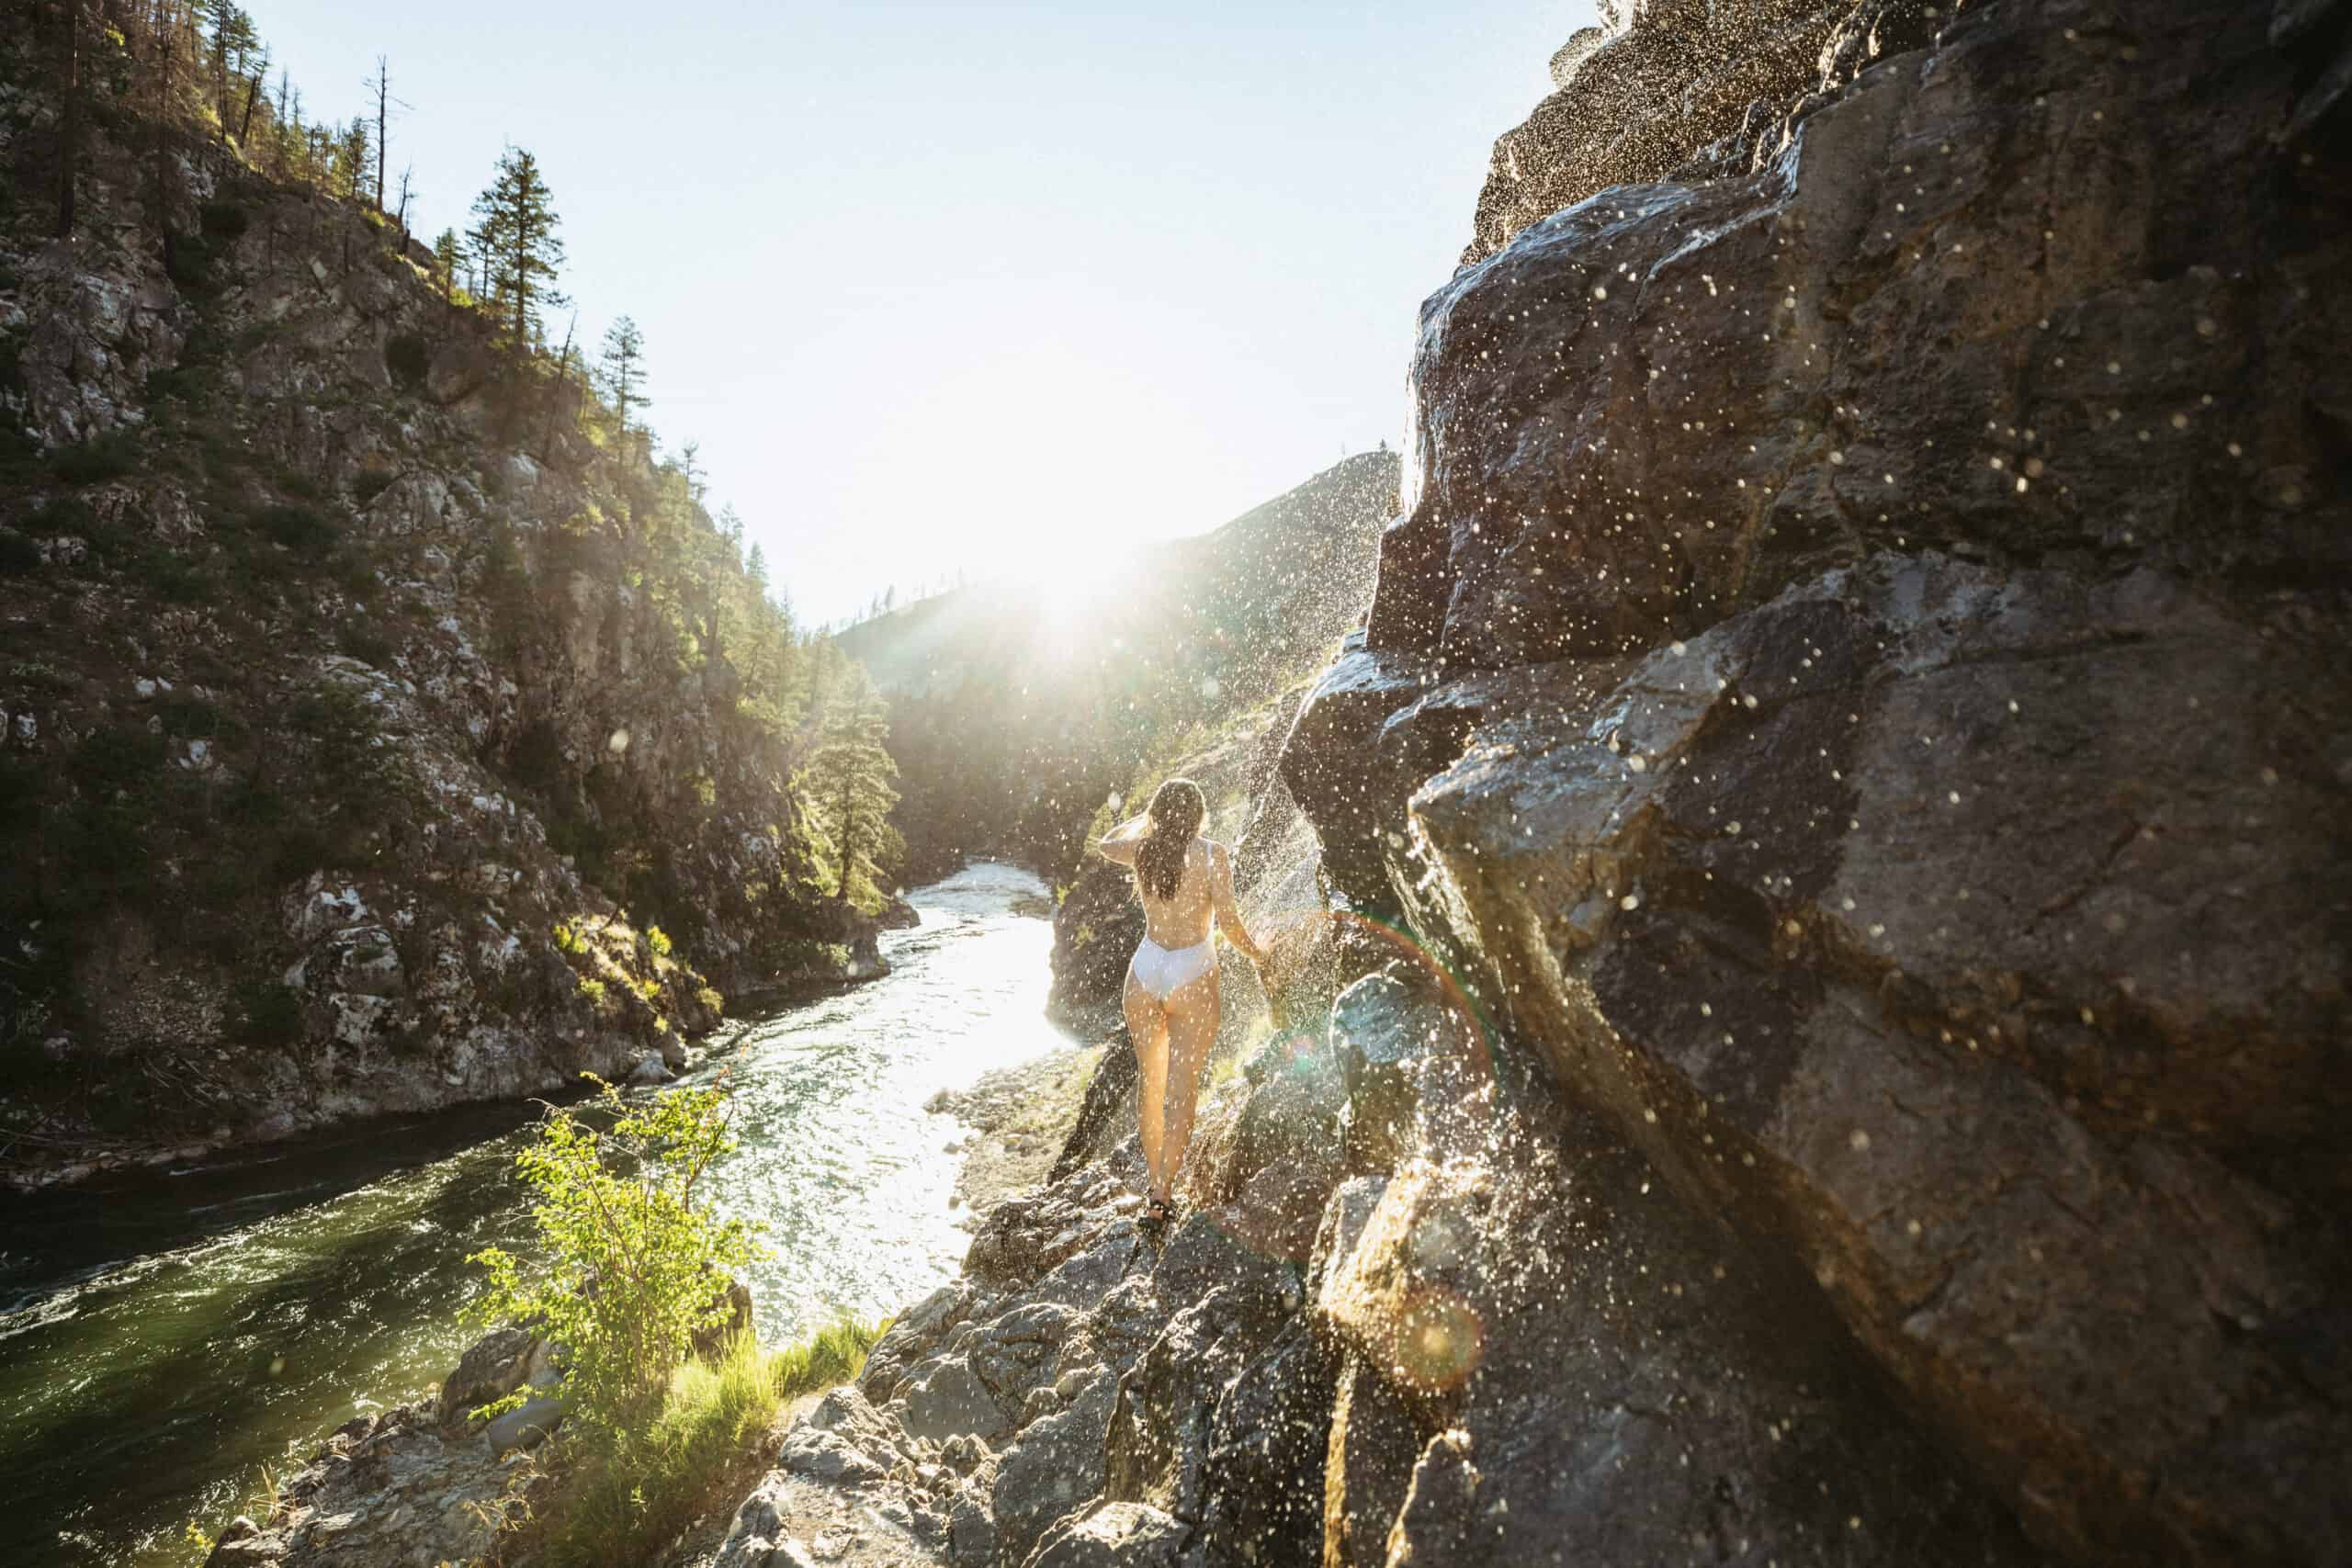 Relax Your Body At Pine Flats Hot Springs In Idaho (Directions + Essential Tips)